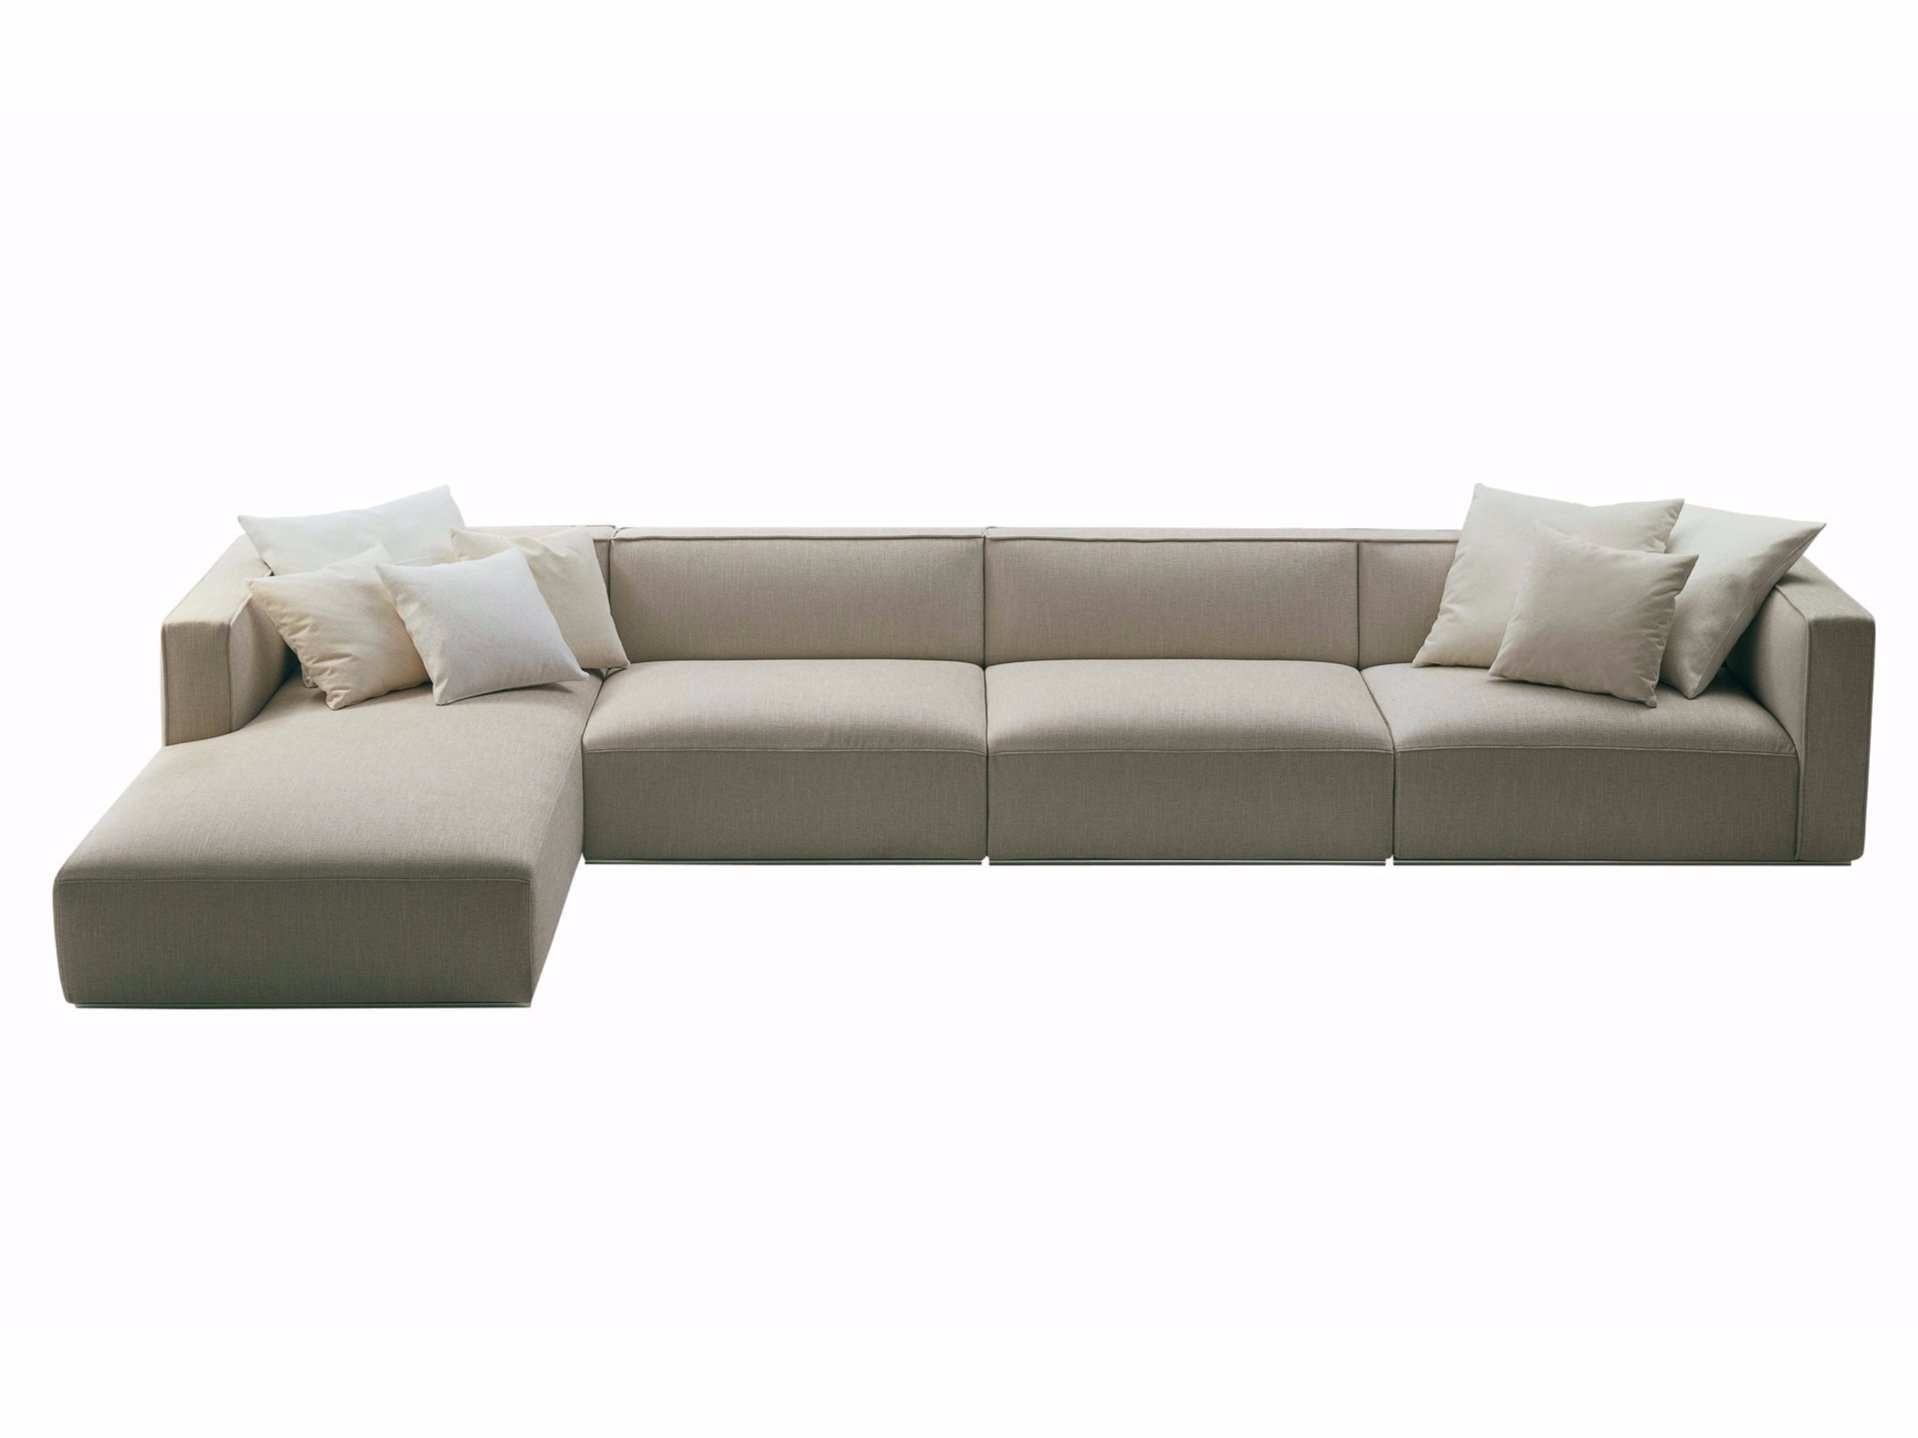 SHANGAI Sofa with chaise longue Shangai Collection by